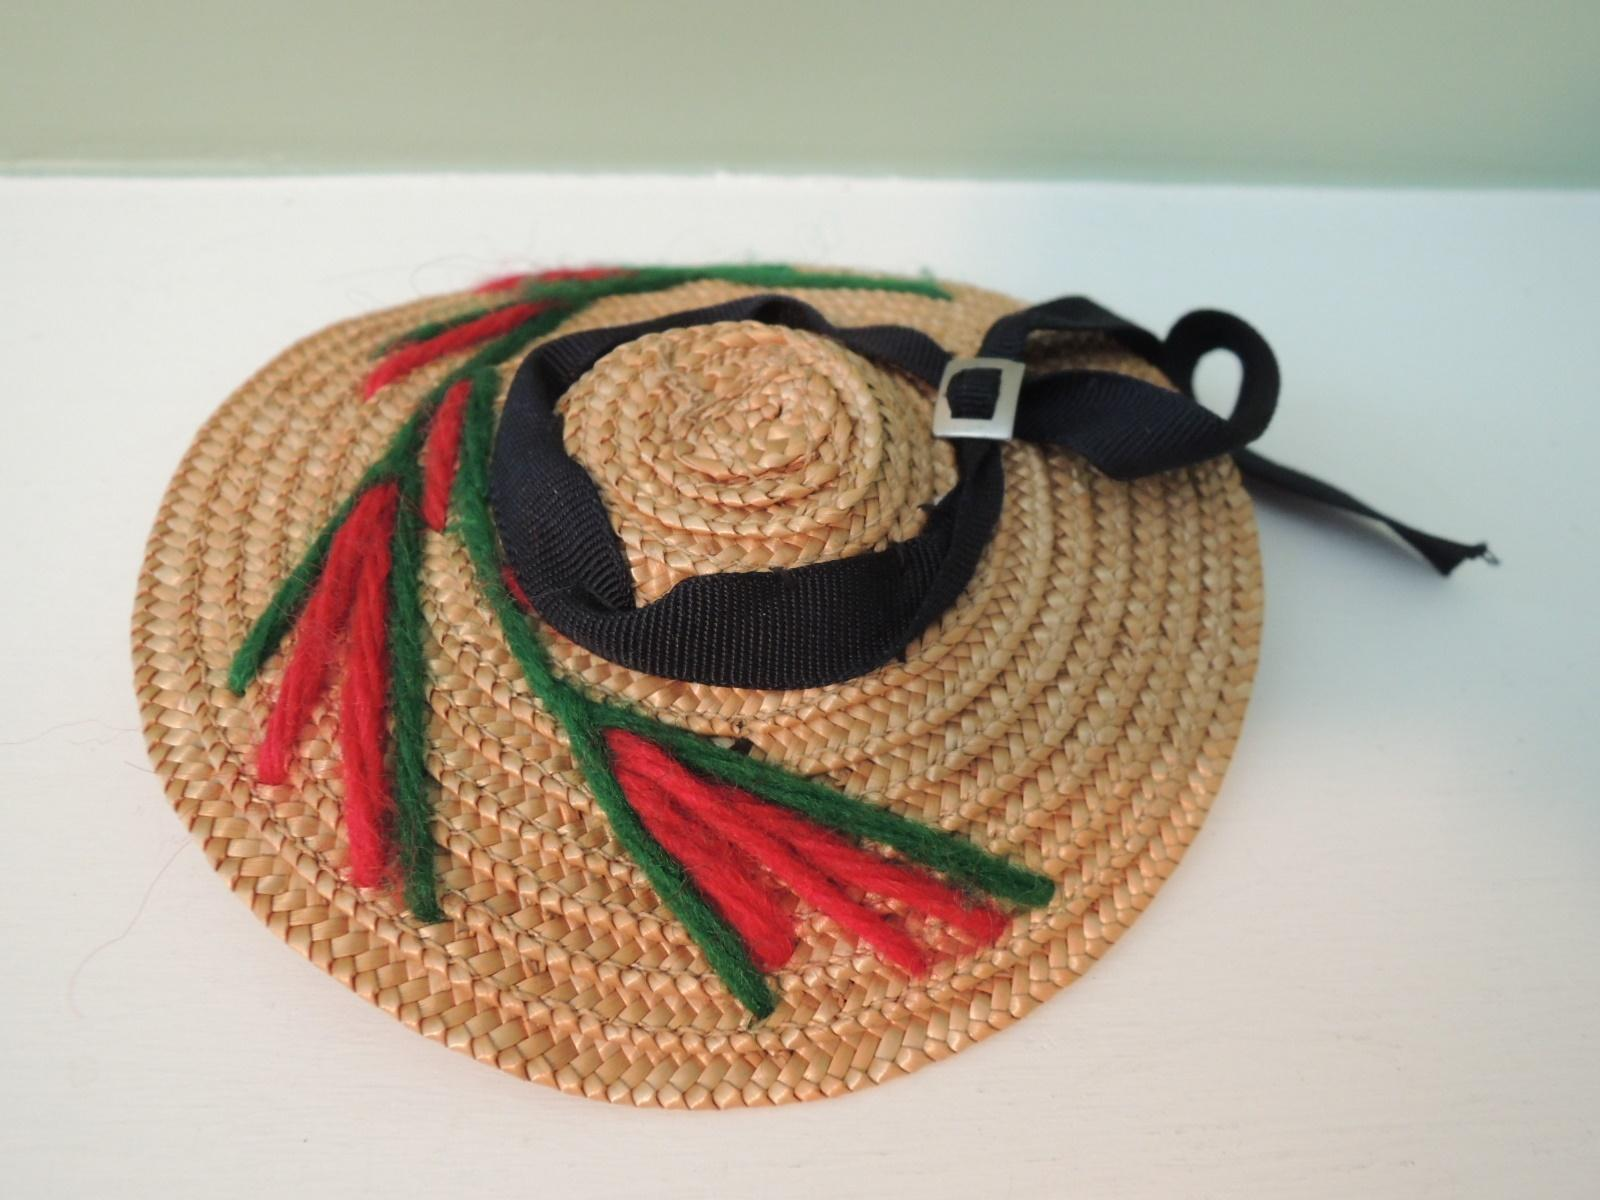 Sweet Little Straw Hat for All Bisque or Mignonette